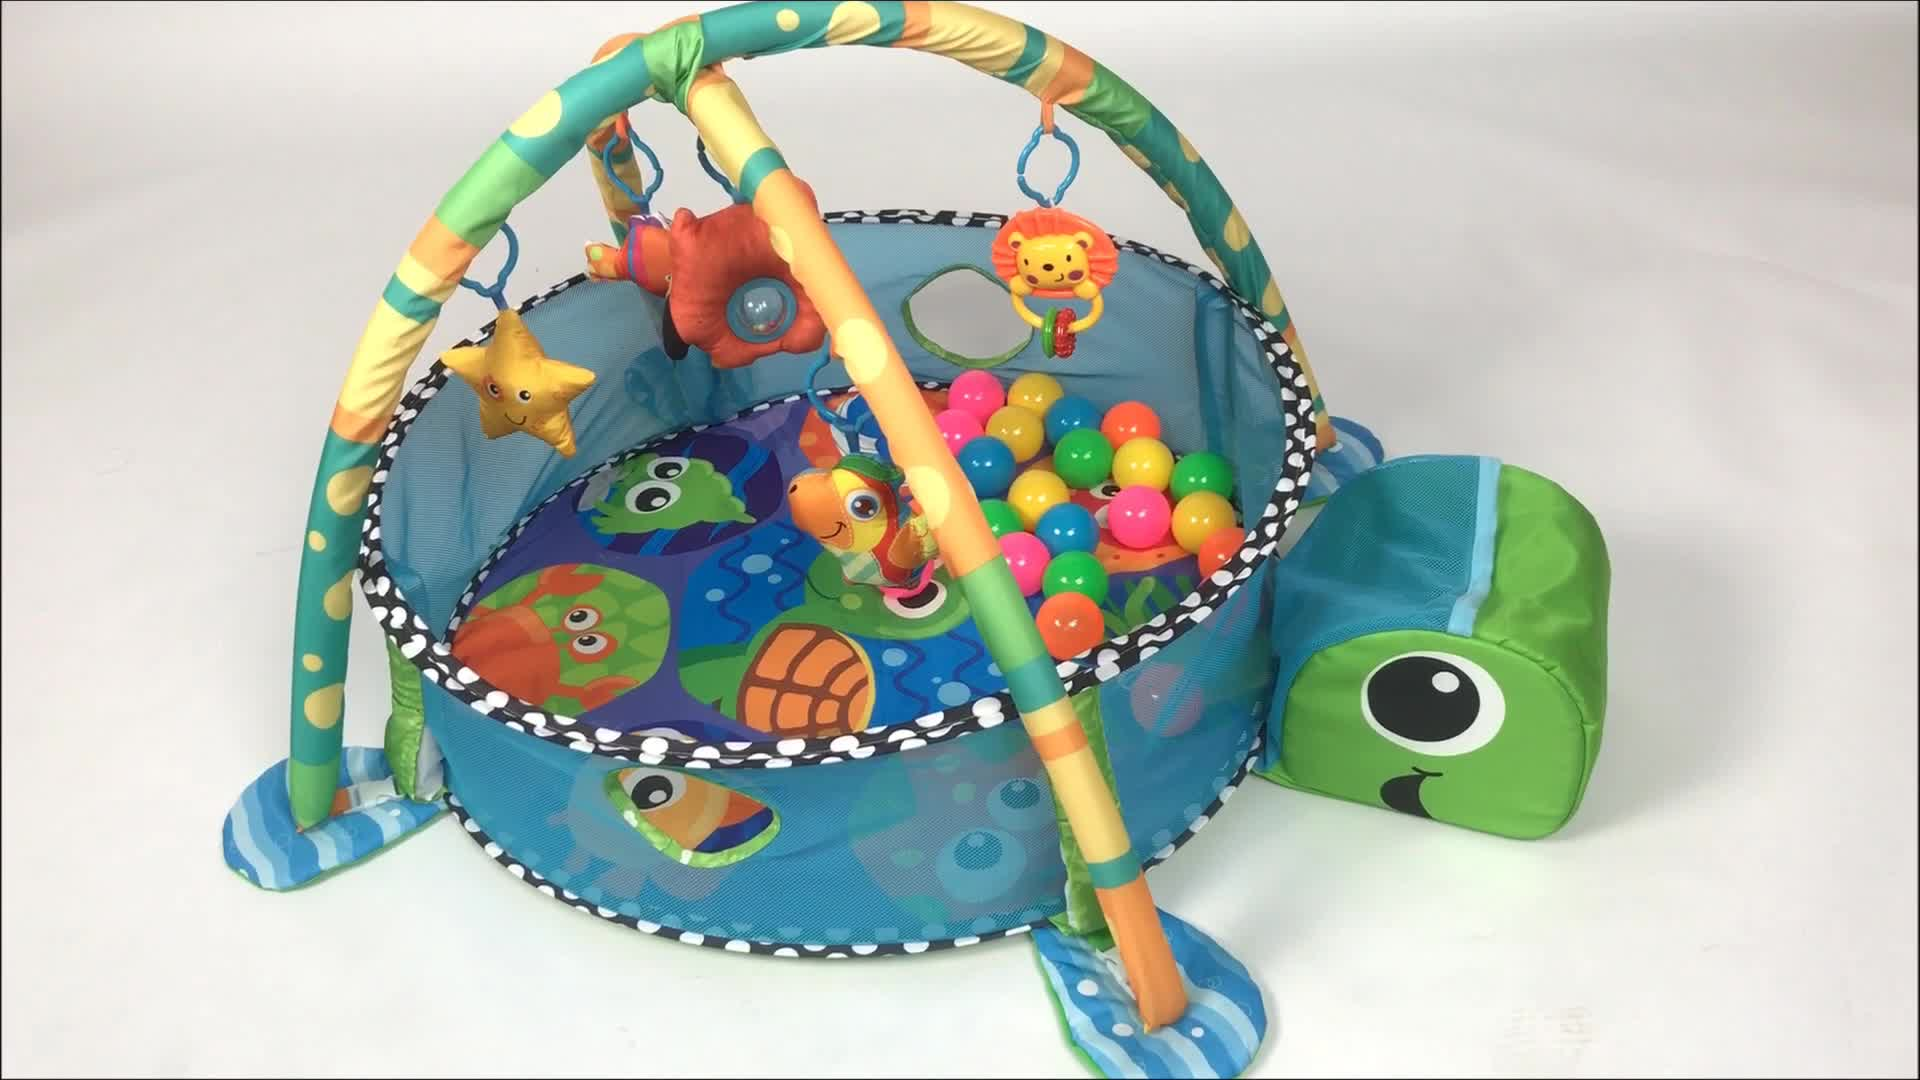 Marine theme turtle design education mat with ocean balls toy baby play gym